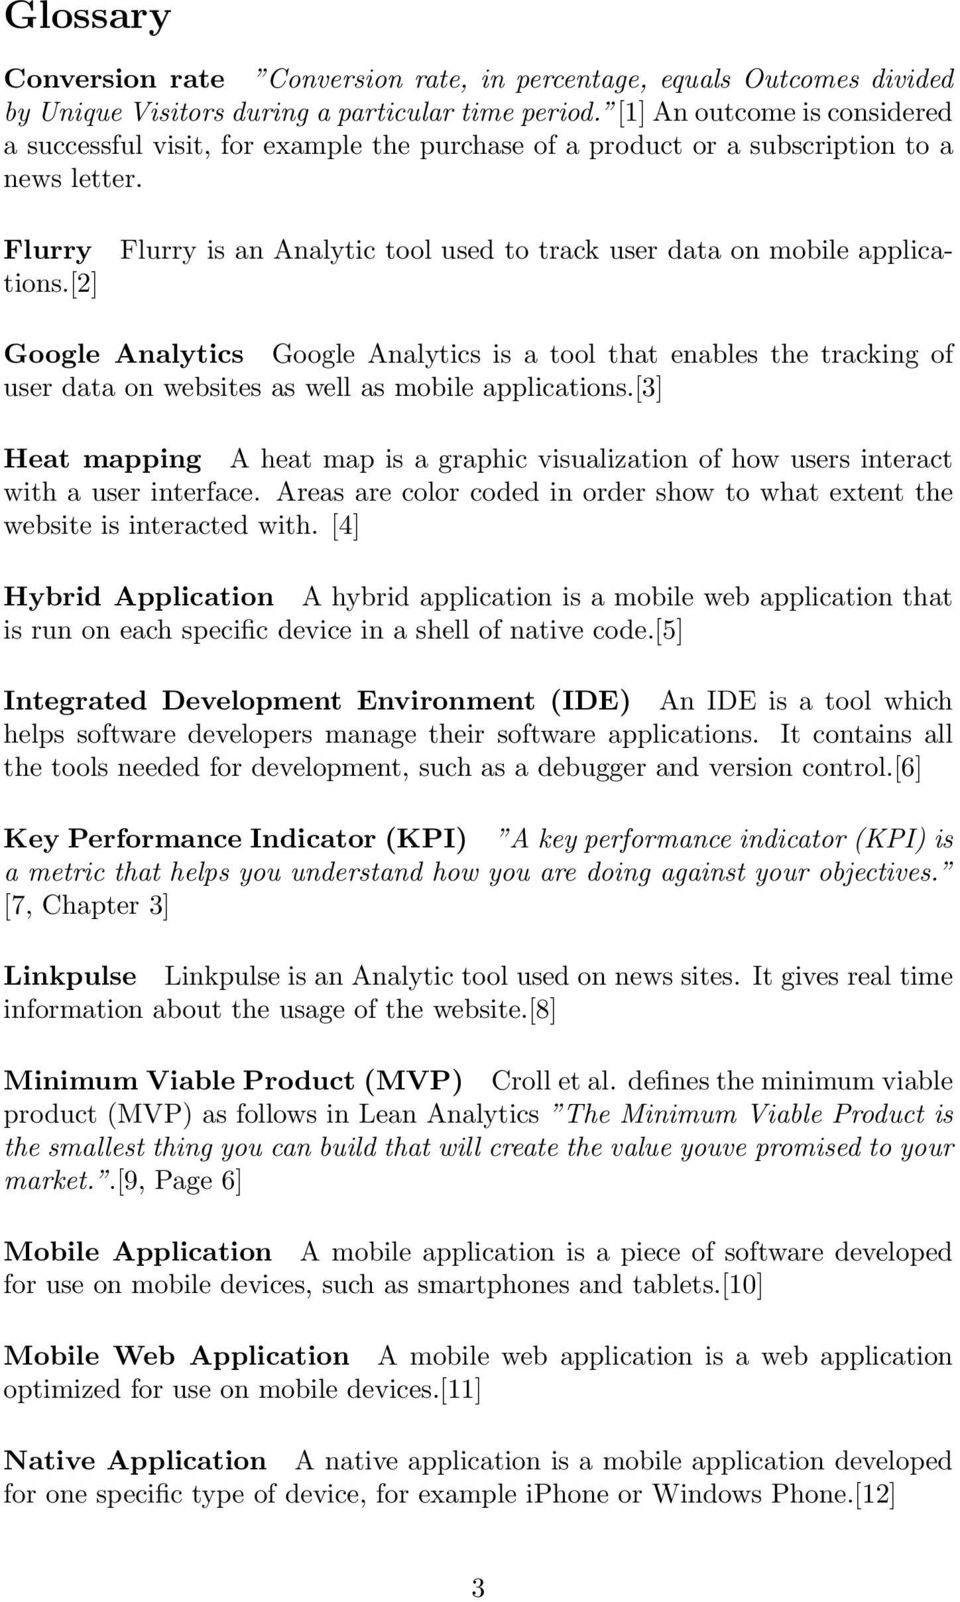 Flurry is an Analytic tool used to track user data on mobile applica- Flurry tions.